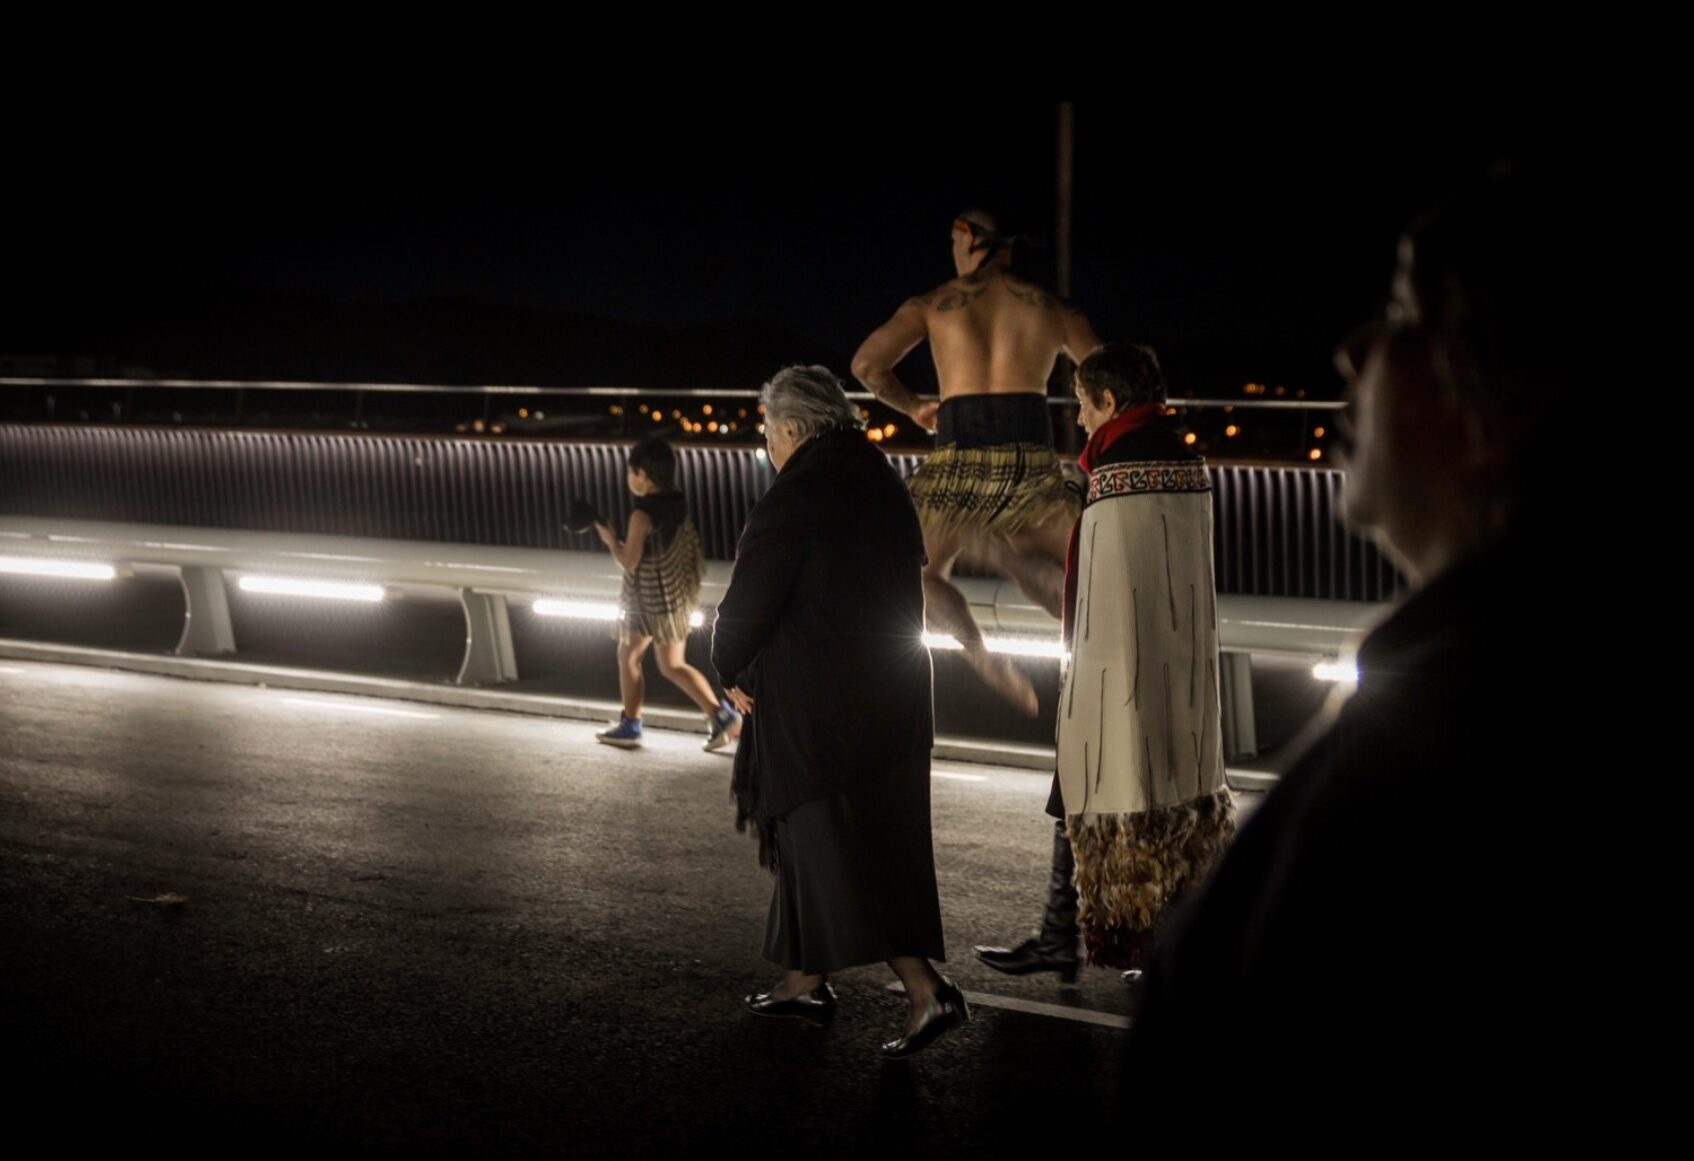 Maori people at opening ceremony walking across the deck at night with bridge lighting